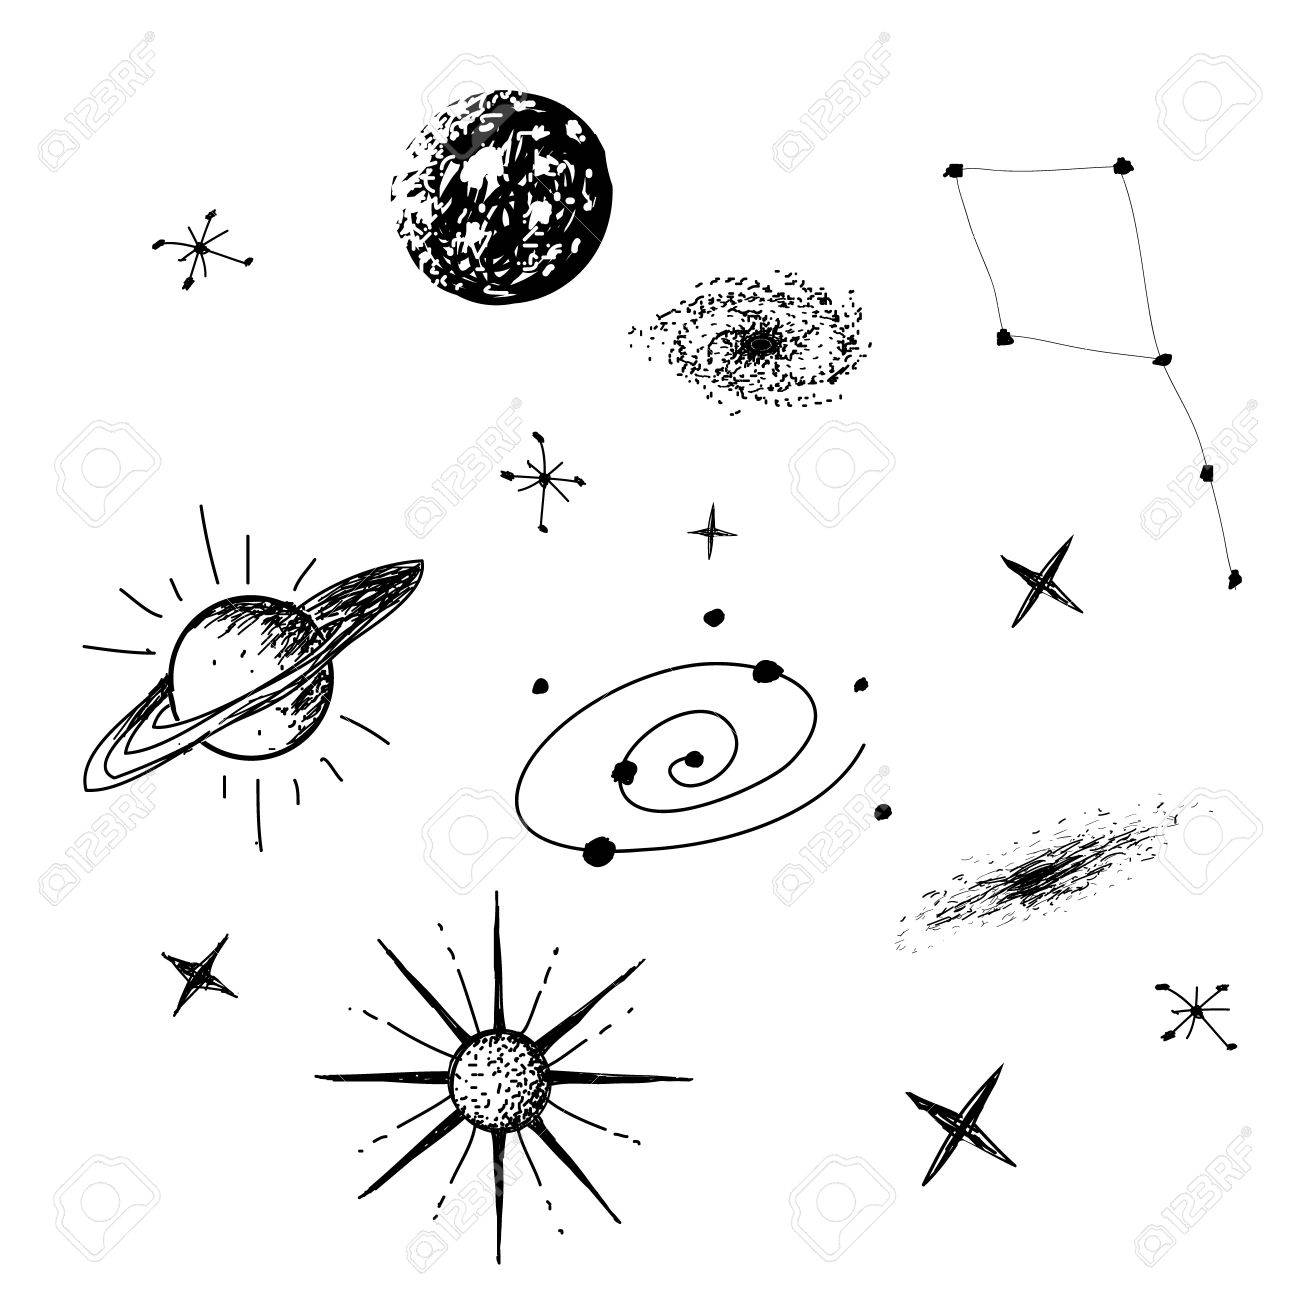 Galaxy Clipart Black And White (82+ images in Collection) Page 1.